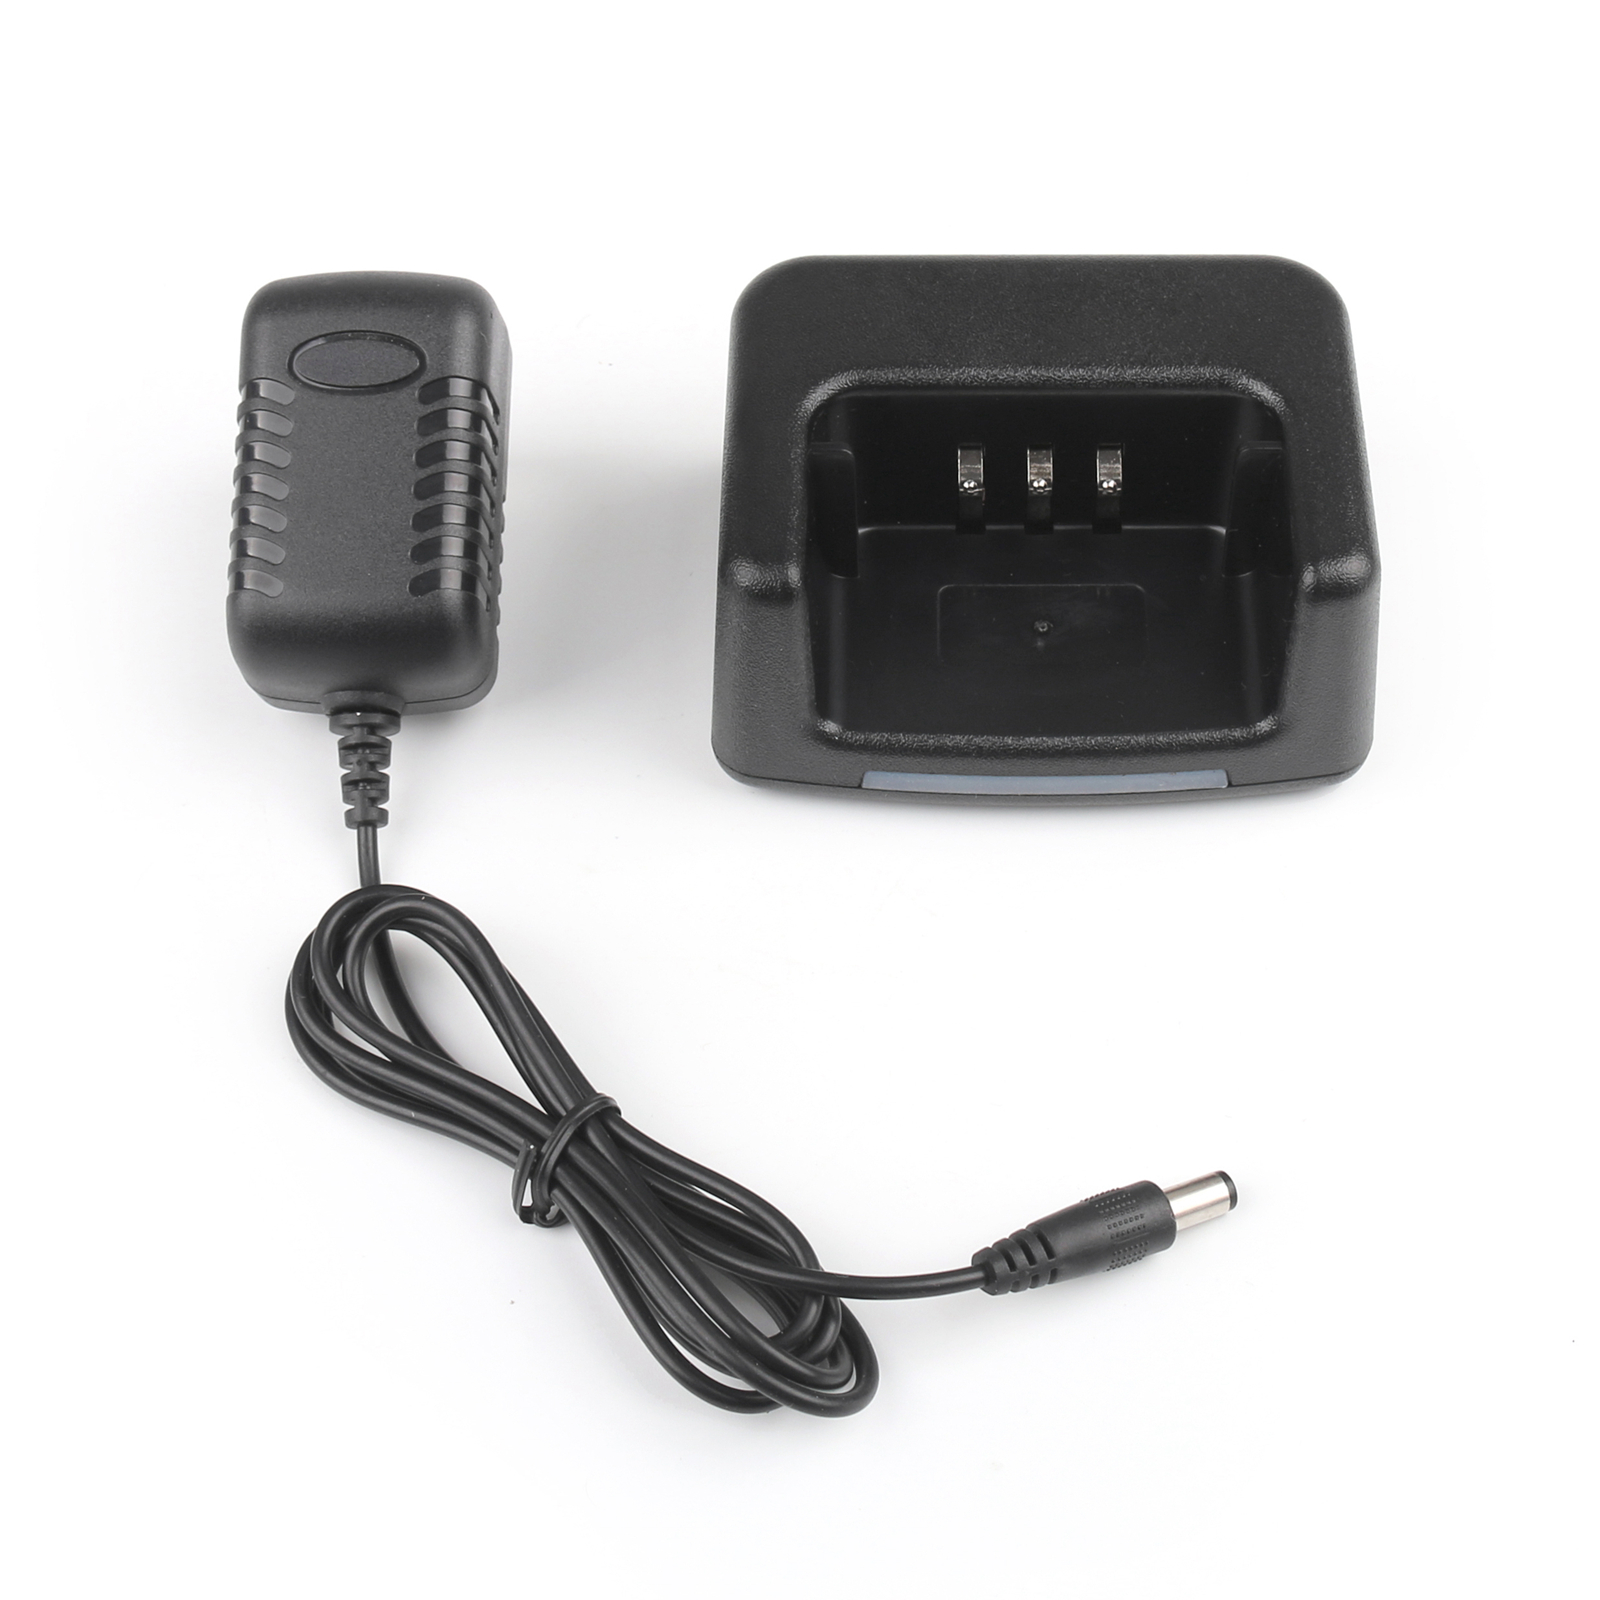 1Set Desktop Battery Charger For TYT MD-380 Two Way Radio USA Plug US T2